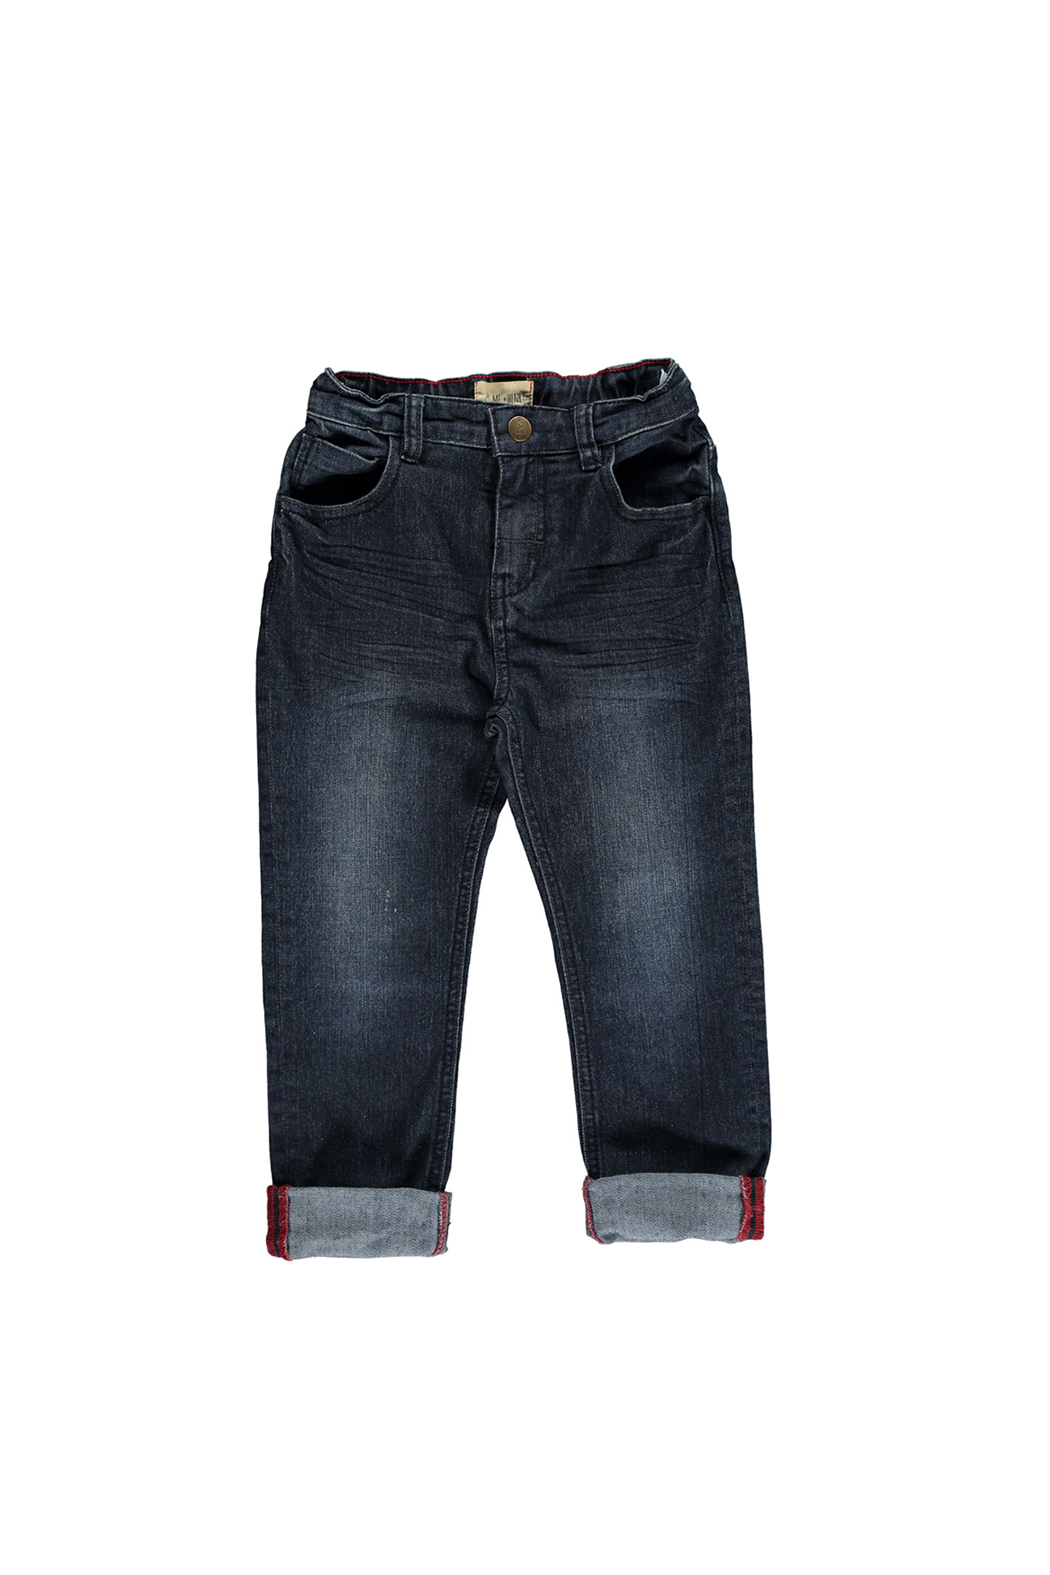 Me & Henry Denim Jeans - Front Cropped Image